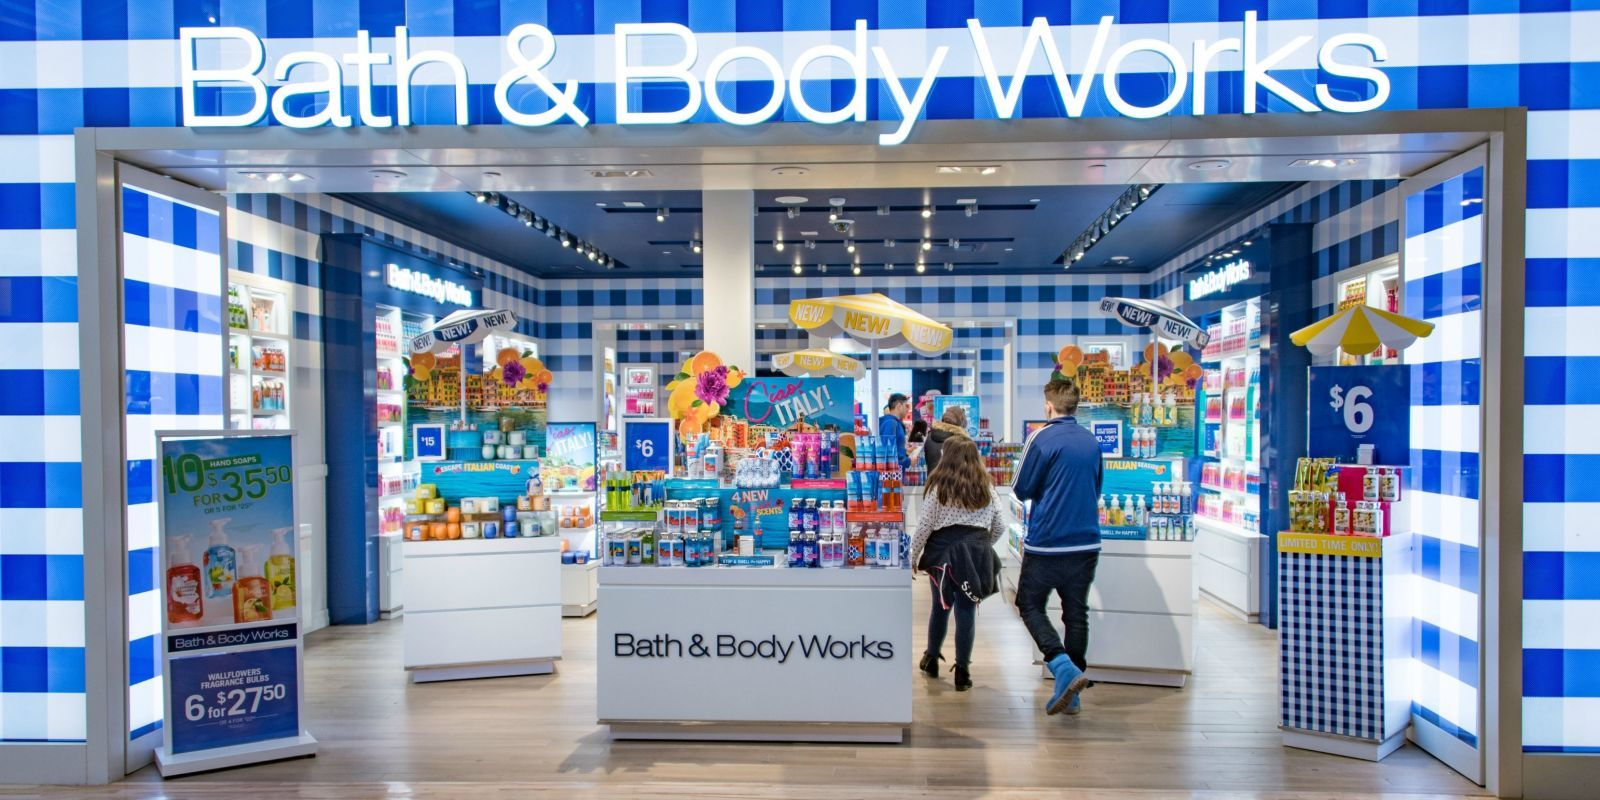 Bath & Body Works Is Bringing Back Your Fave '90s Fragrances - GoodHousekeeping.com